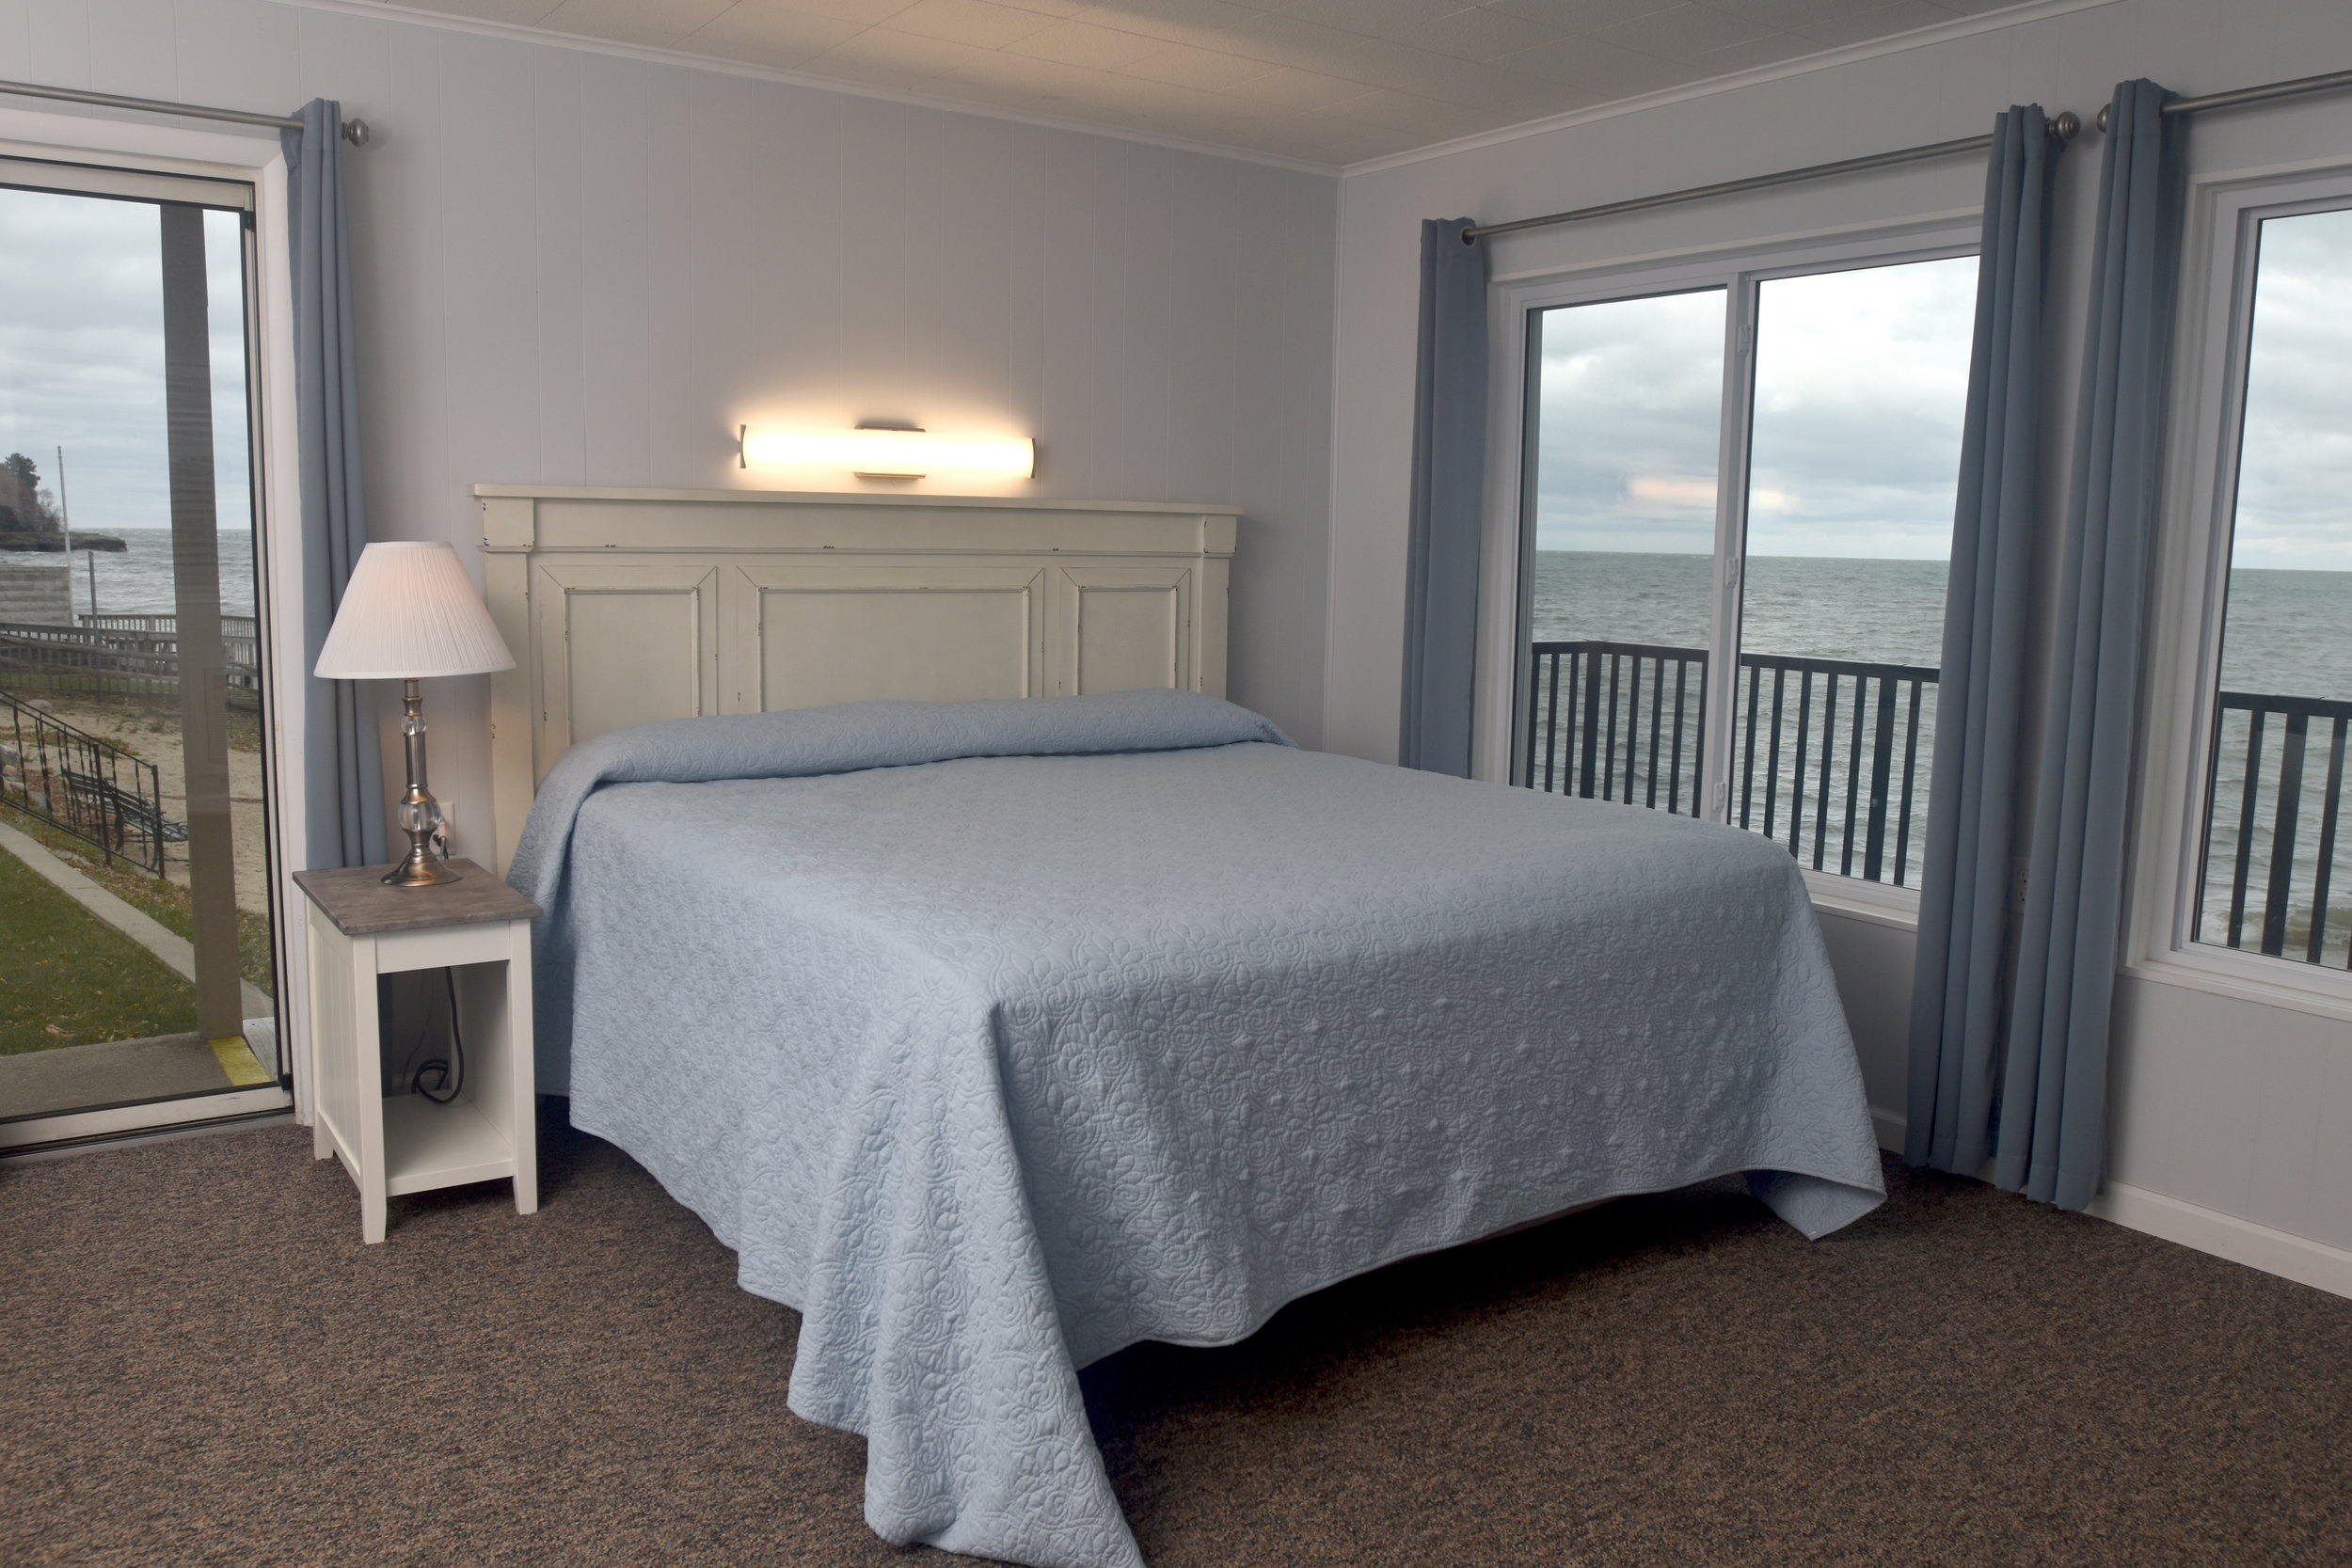 Rooms at the Beachcomber